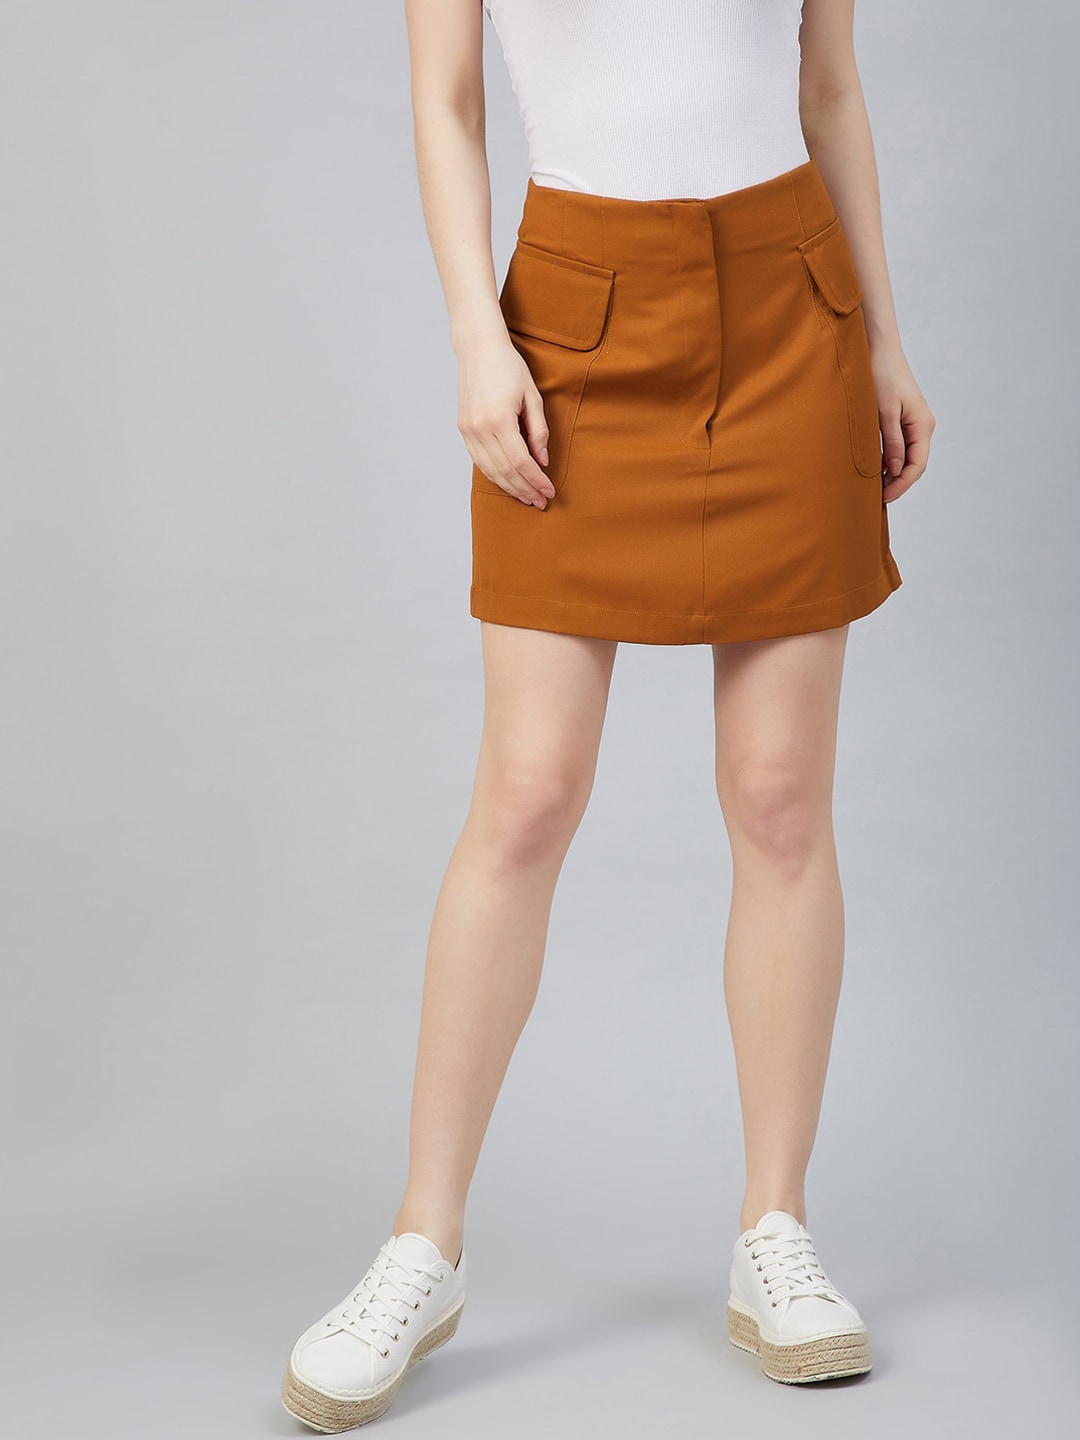 Marie Claire Women Tan Brown Solid Straight Mini Skirt